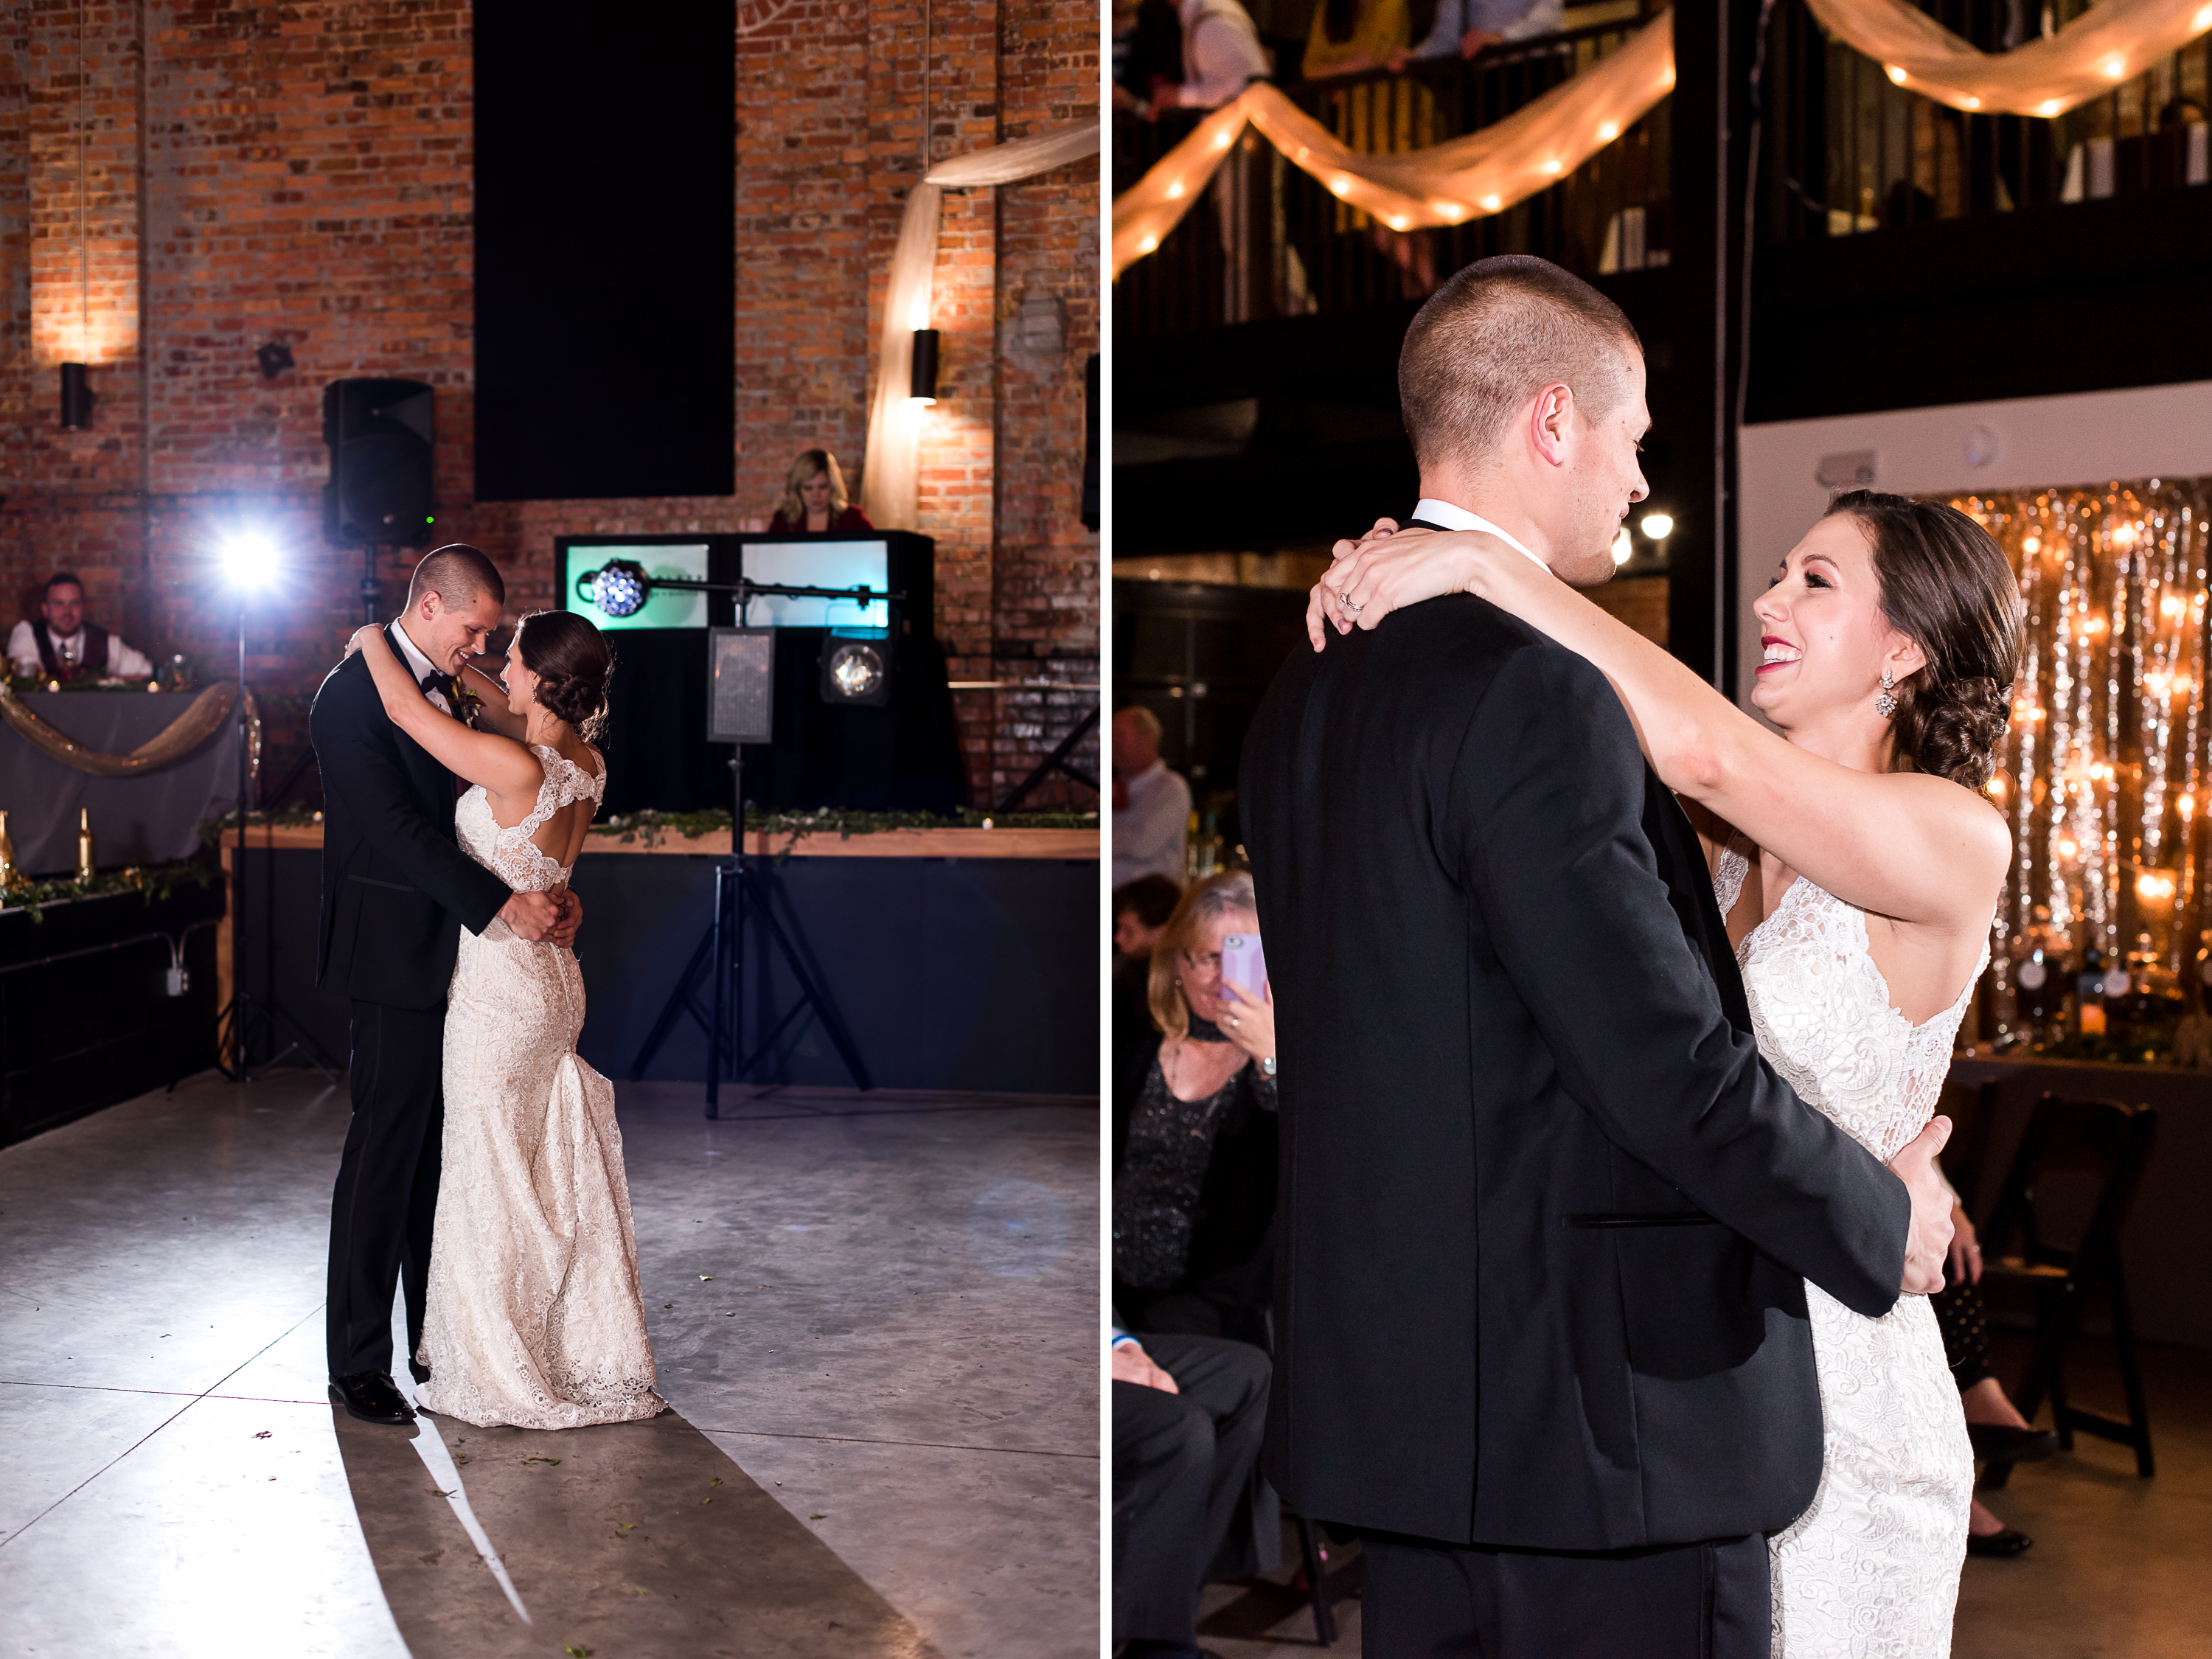 The-Millbottom-Jefferson-City-Missouri-Wedding-Details-Gold-and-Marsala-Wedding-Dances-Bride-and-Groom